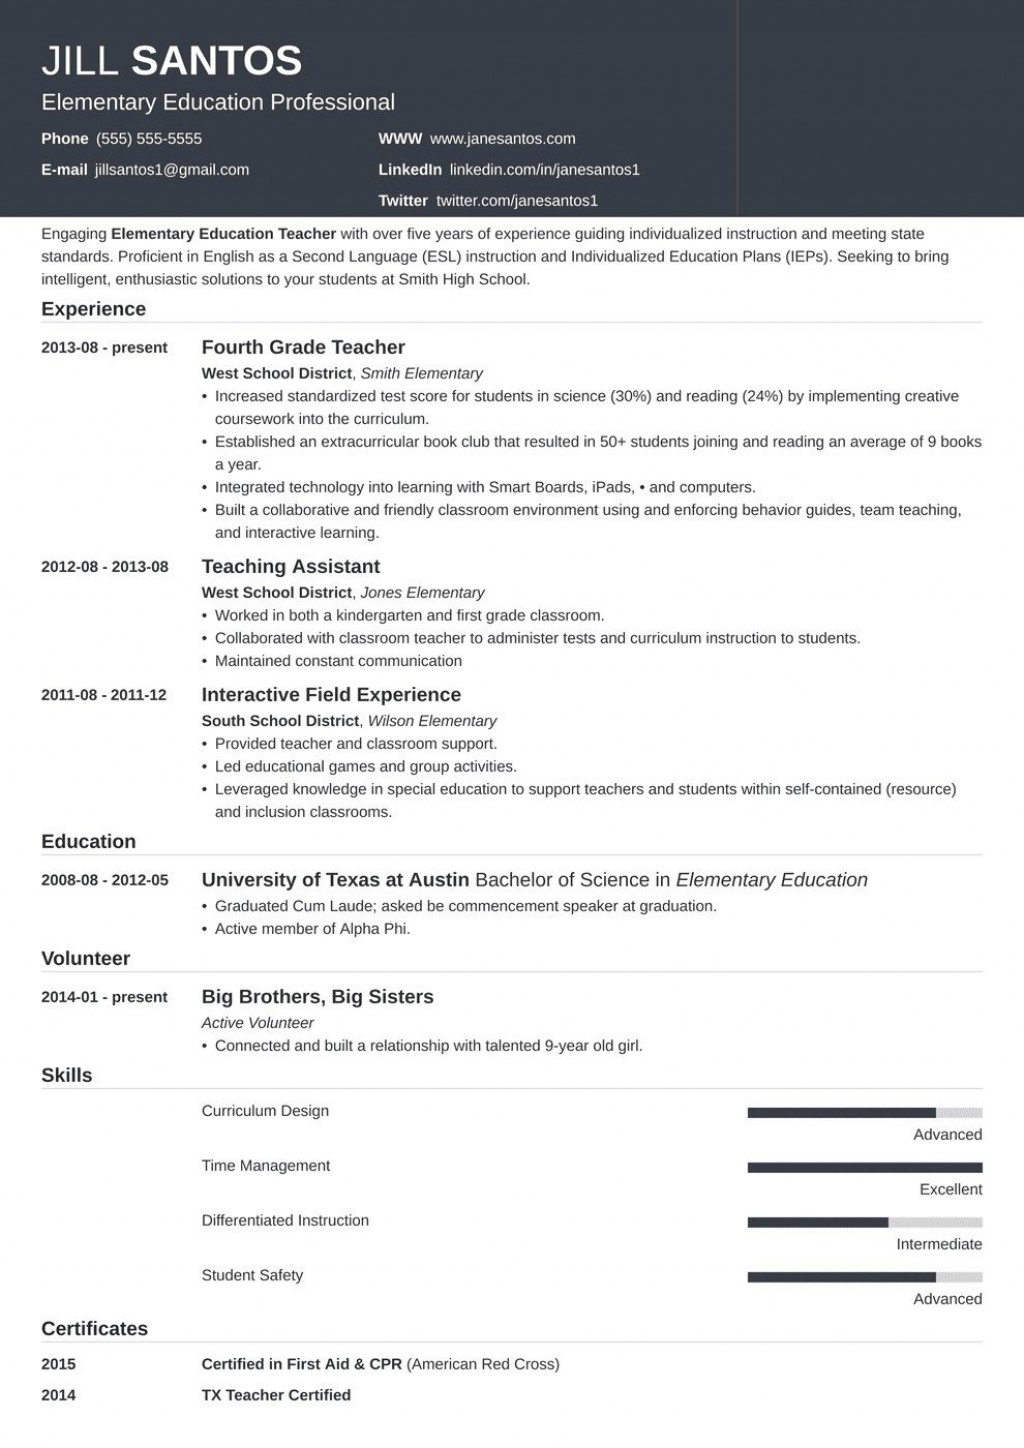 004 Archaicawful Resume Template For Teacher Highest Clarity  Australia Microsoft Word SampleLarge